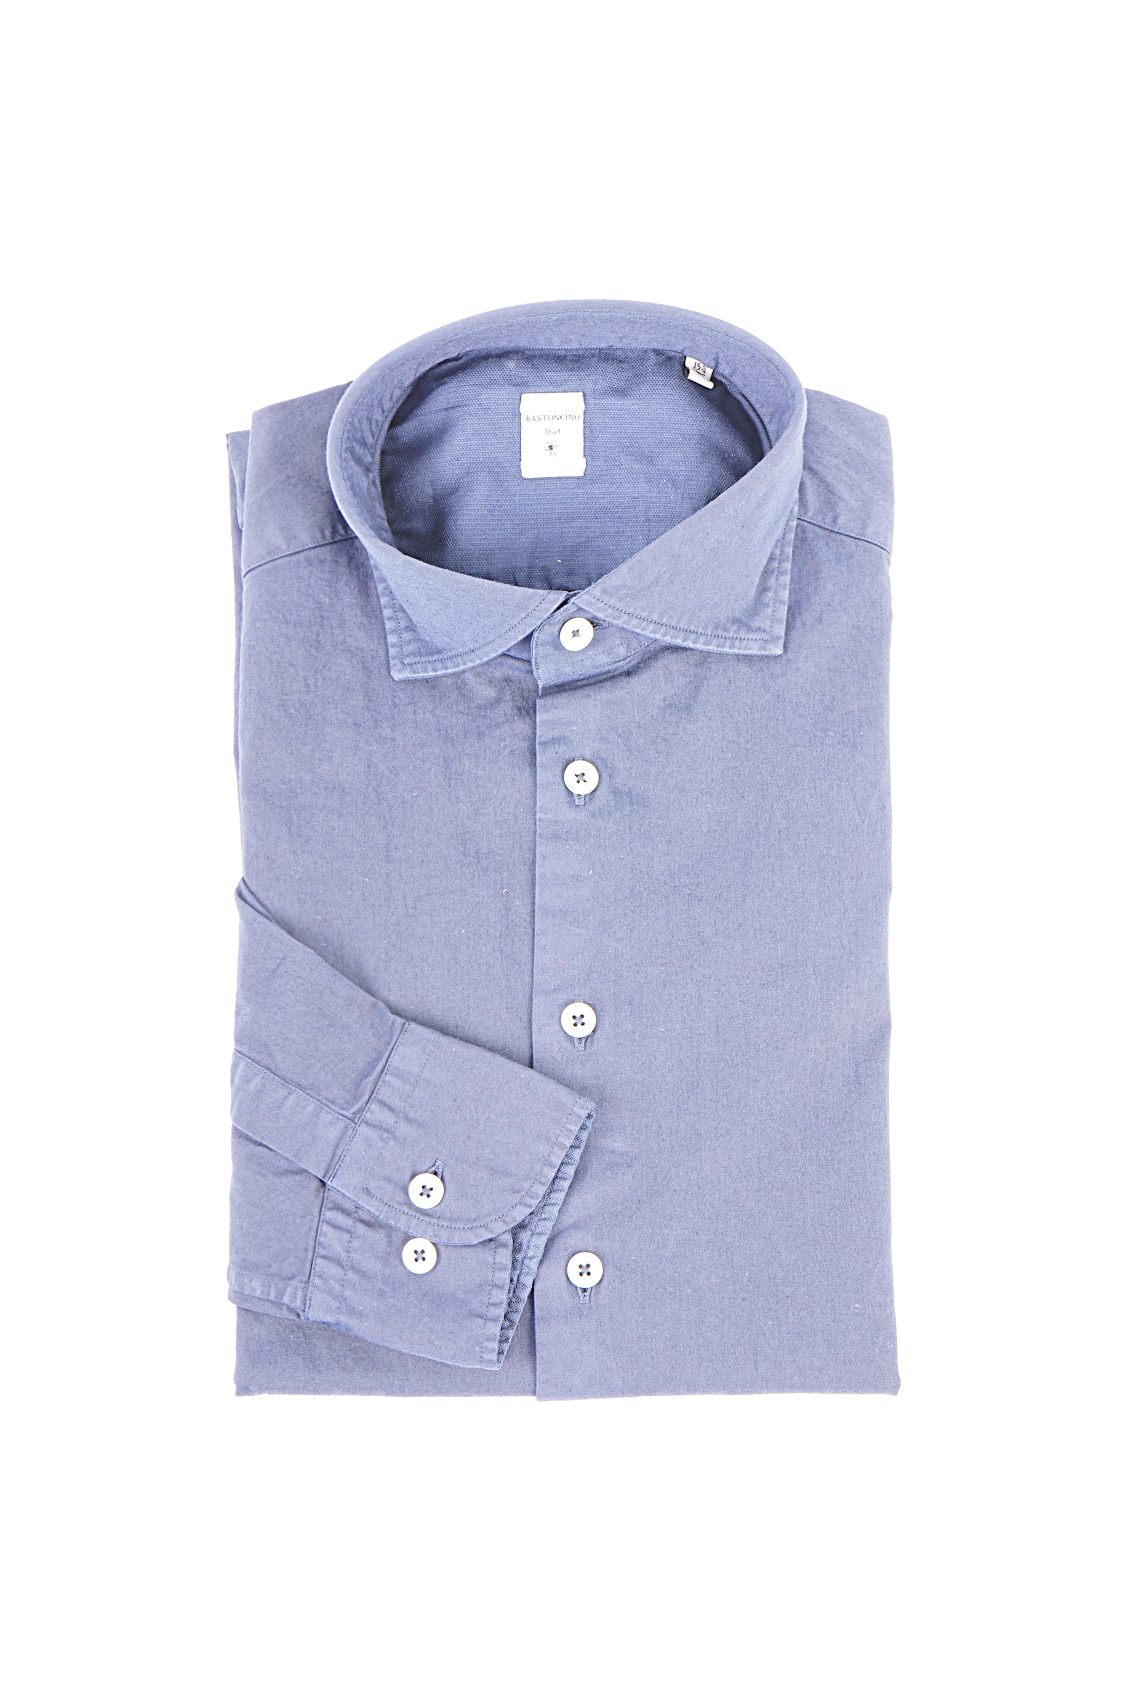 Discount Latest Free Shipping Cheap Real SHIRTS - Shirts Bastoncino Cheap Price Pre Order Limited New fAElvP